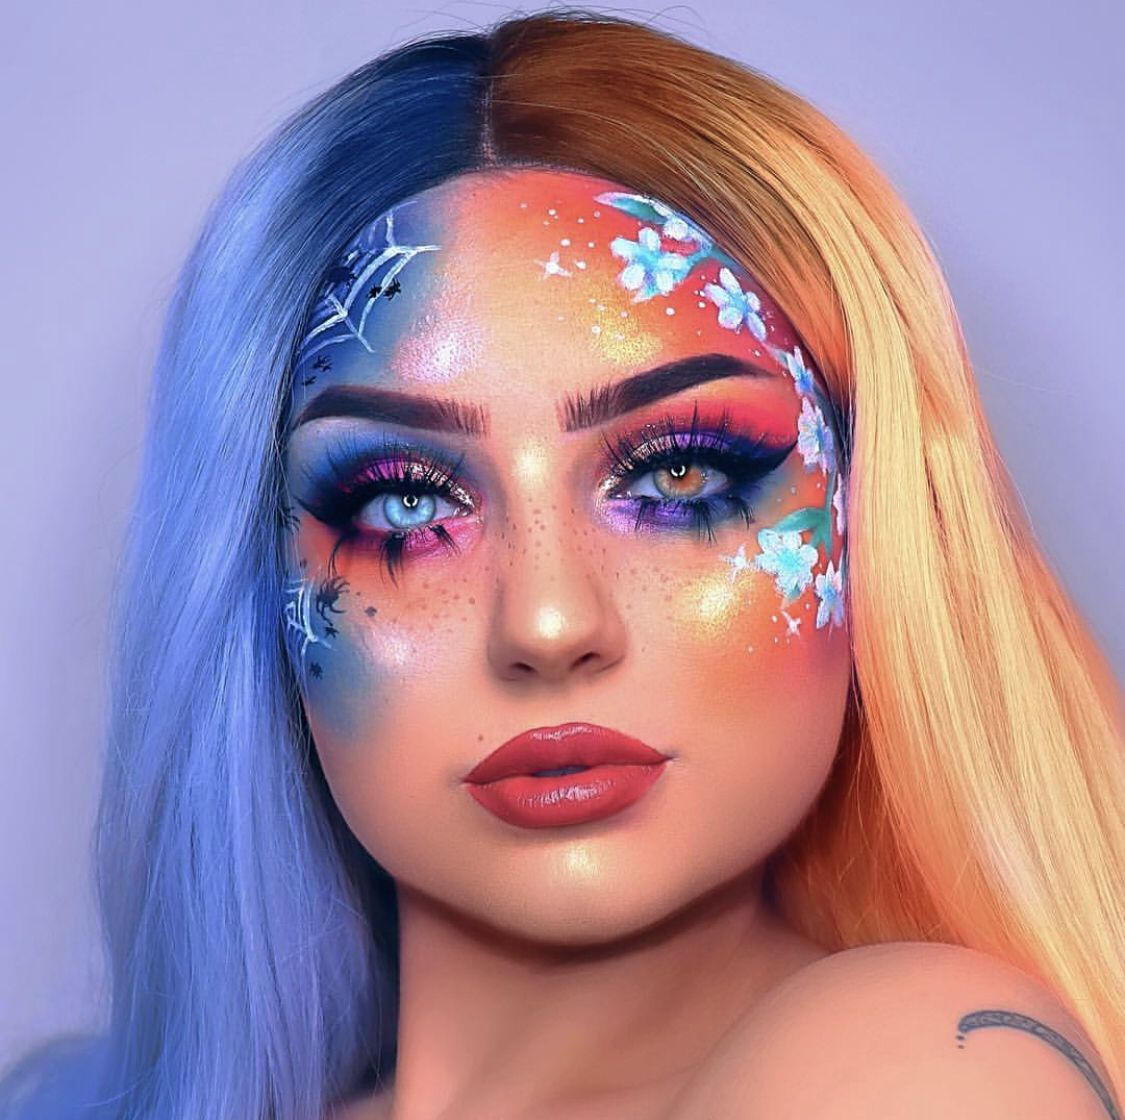 Creative makeup looks by Vanessa W on M A K E U P